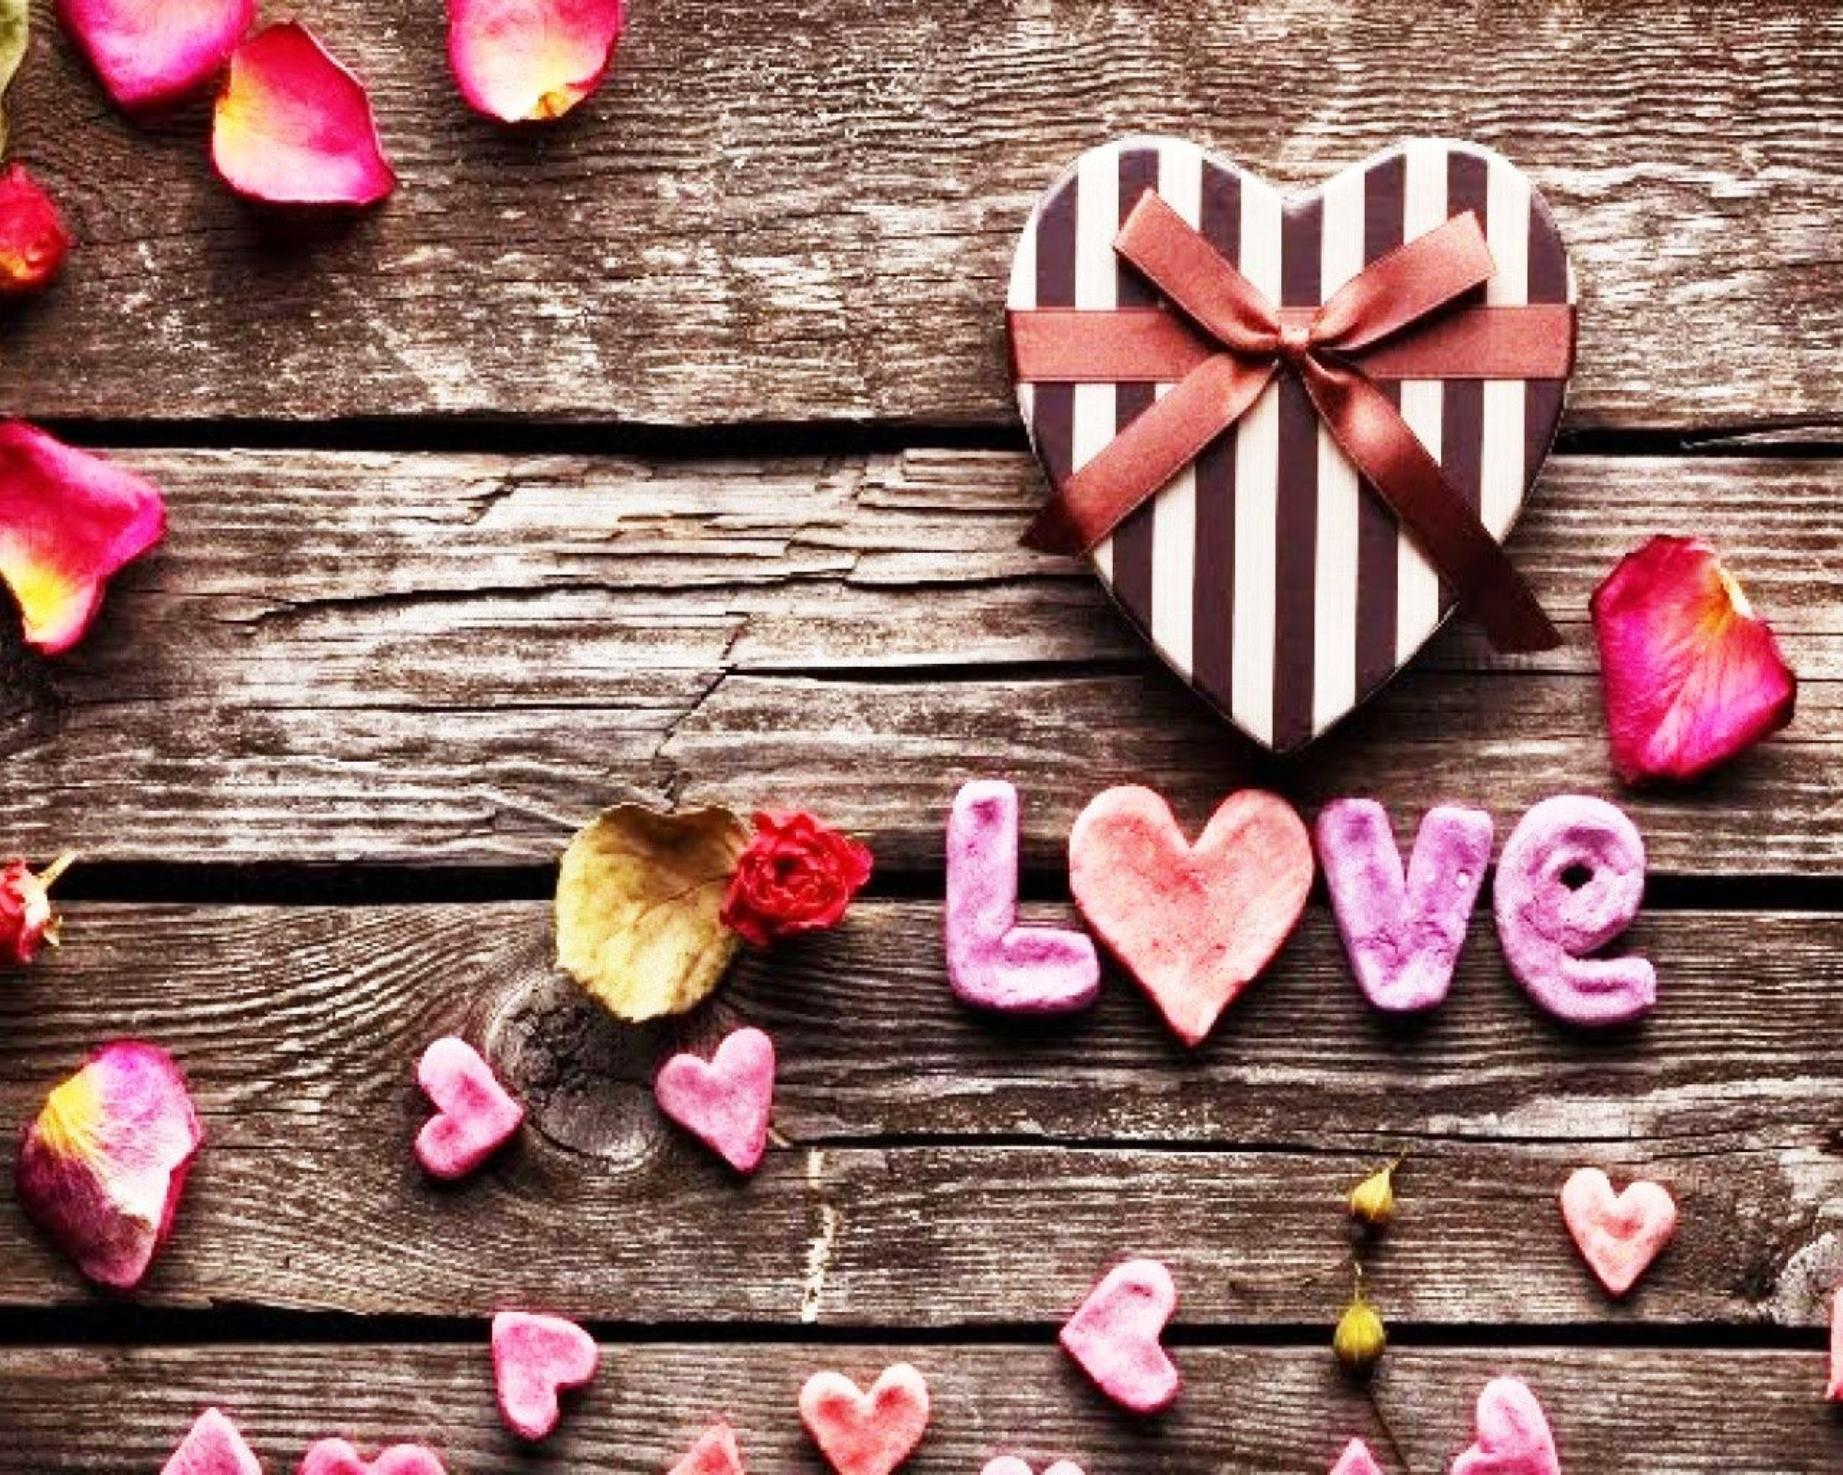 Cute Love Hd Wallpapers For Mobile Wallpaper Cave